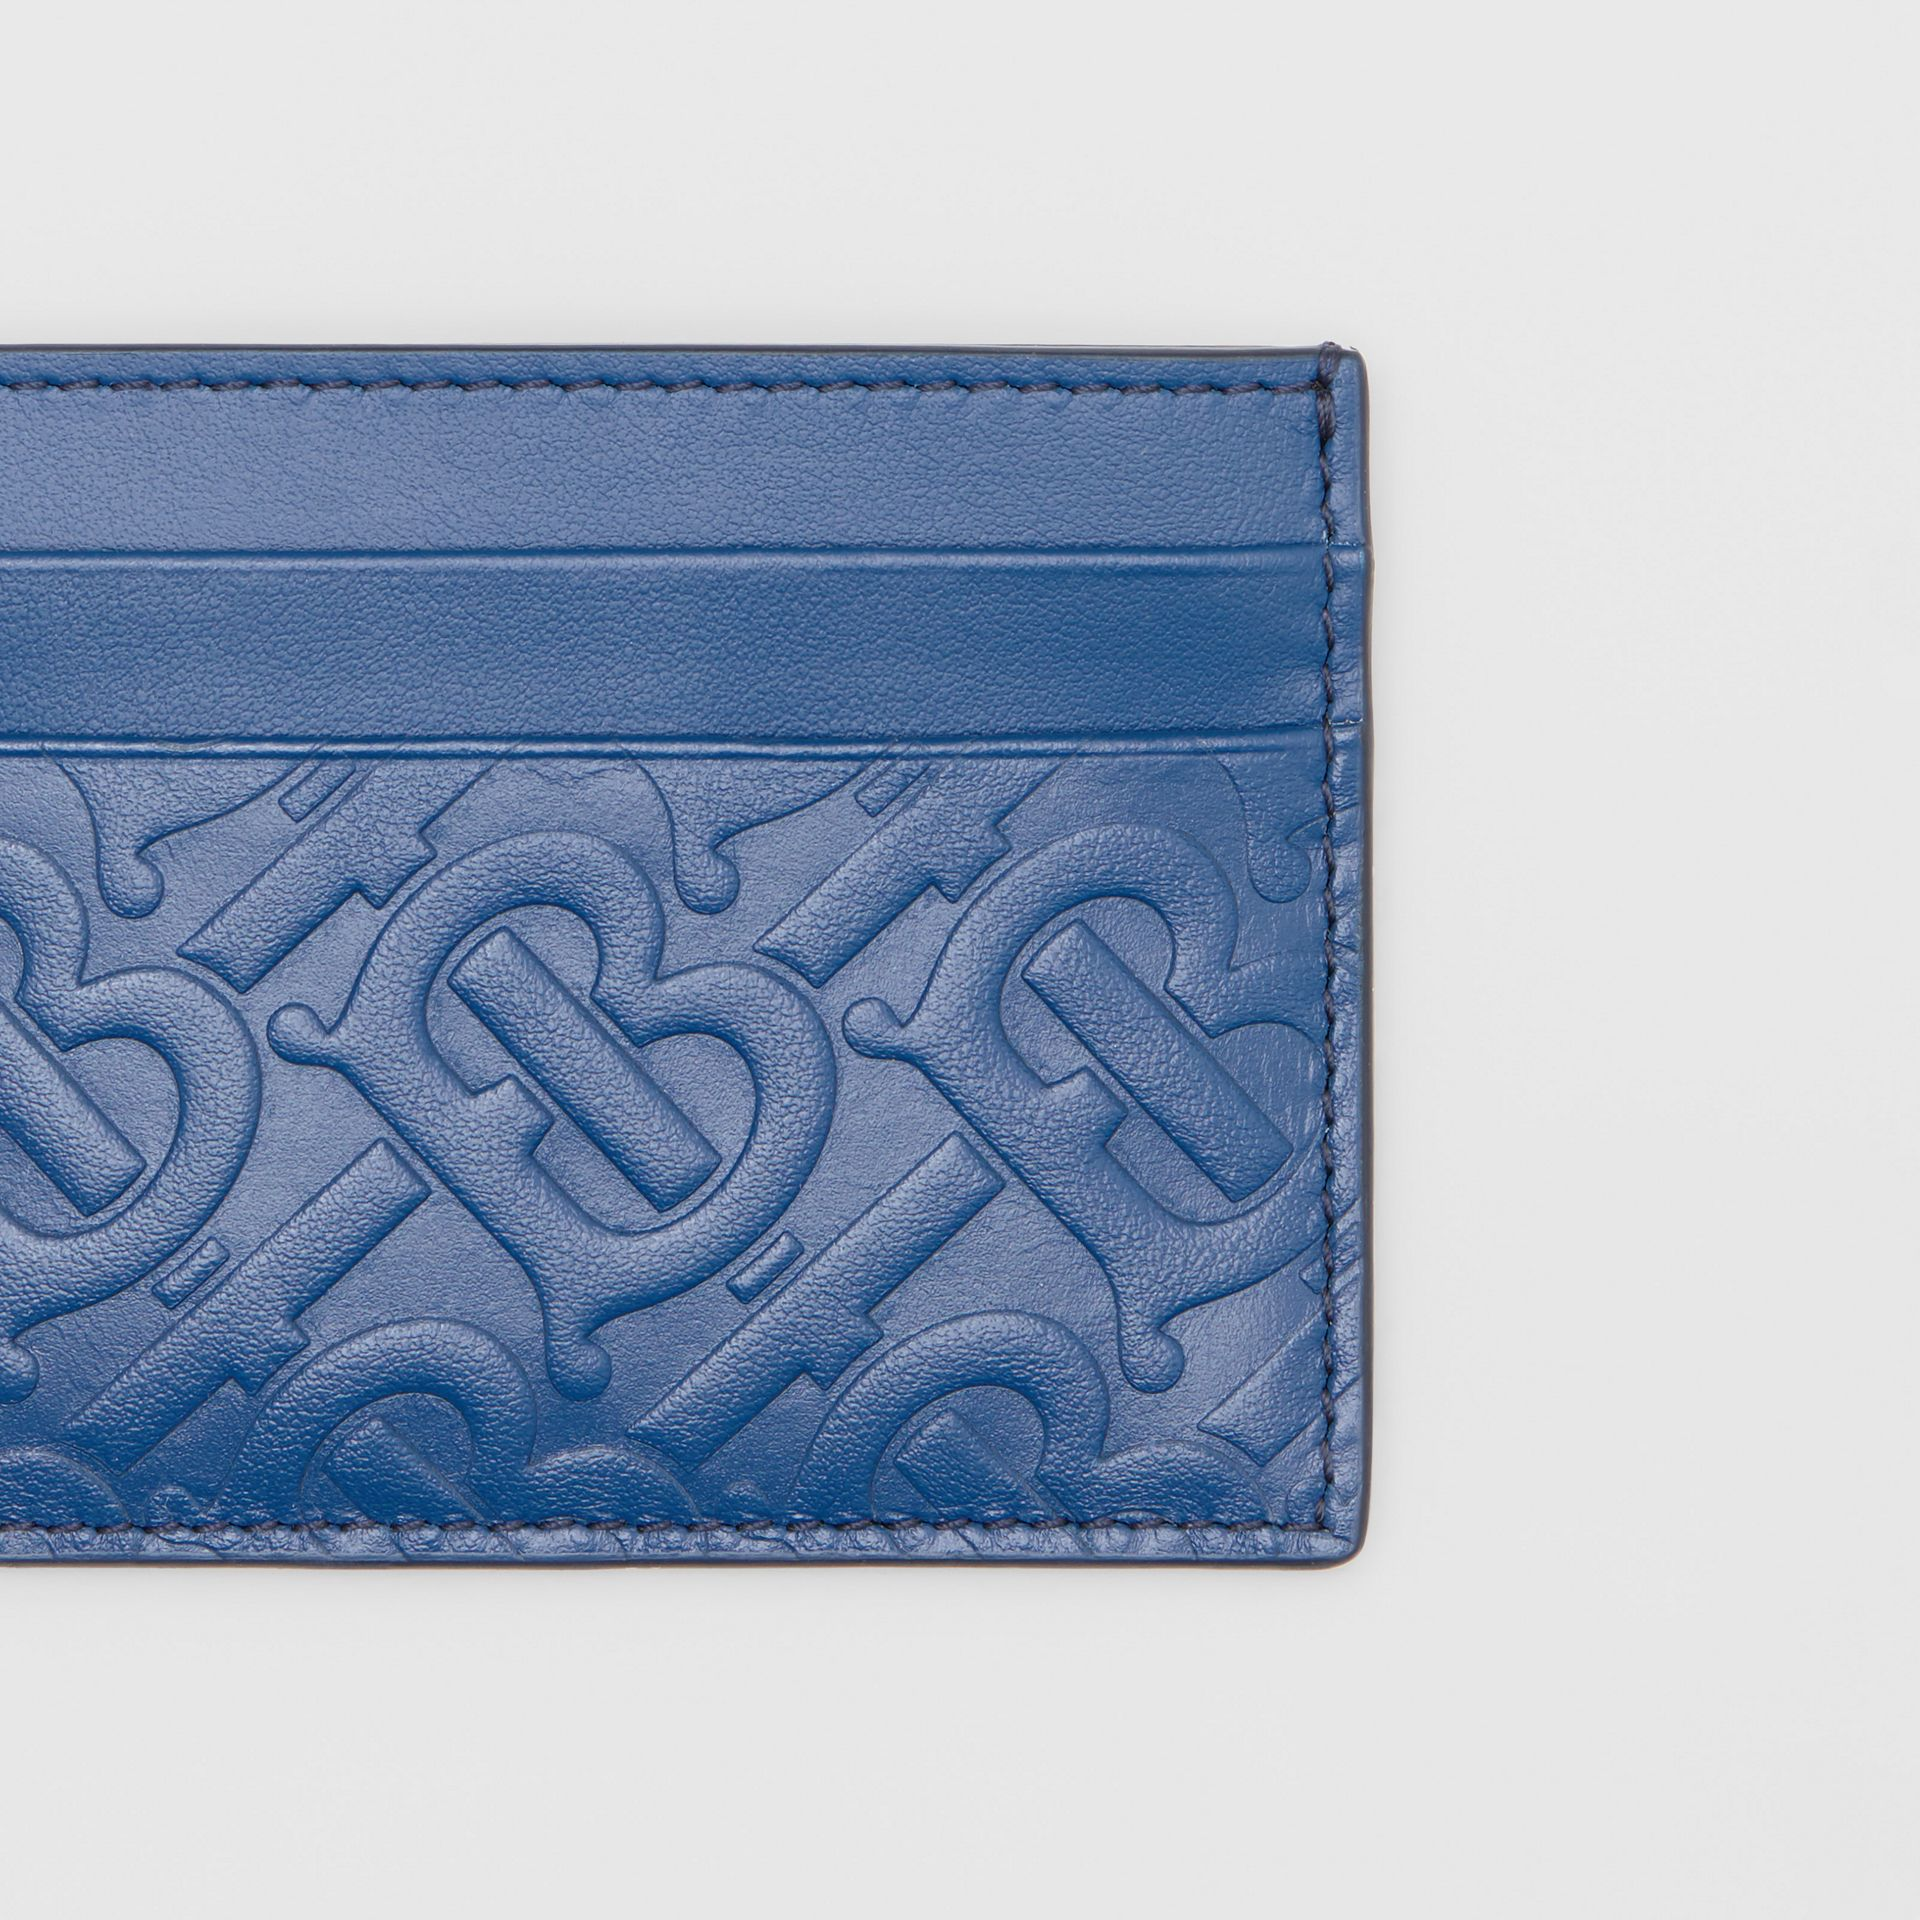 Monogram Leather Card Case in Pale Canvas Blue - Men | Burberry United States - gallery image 1